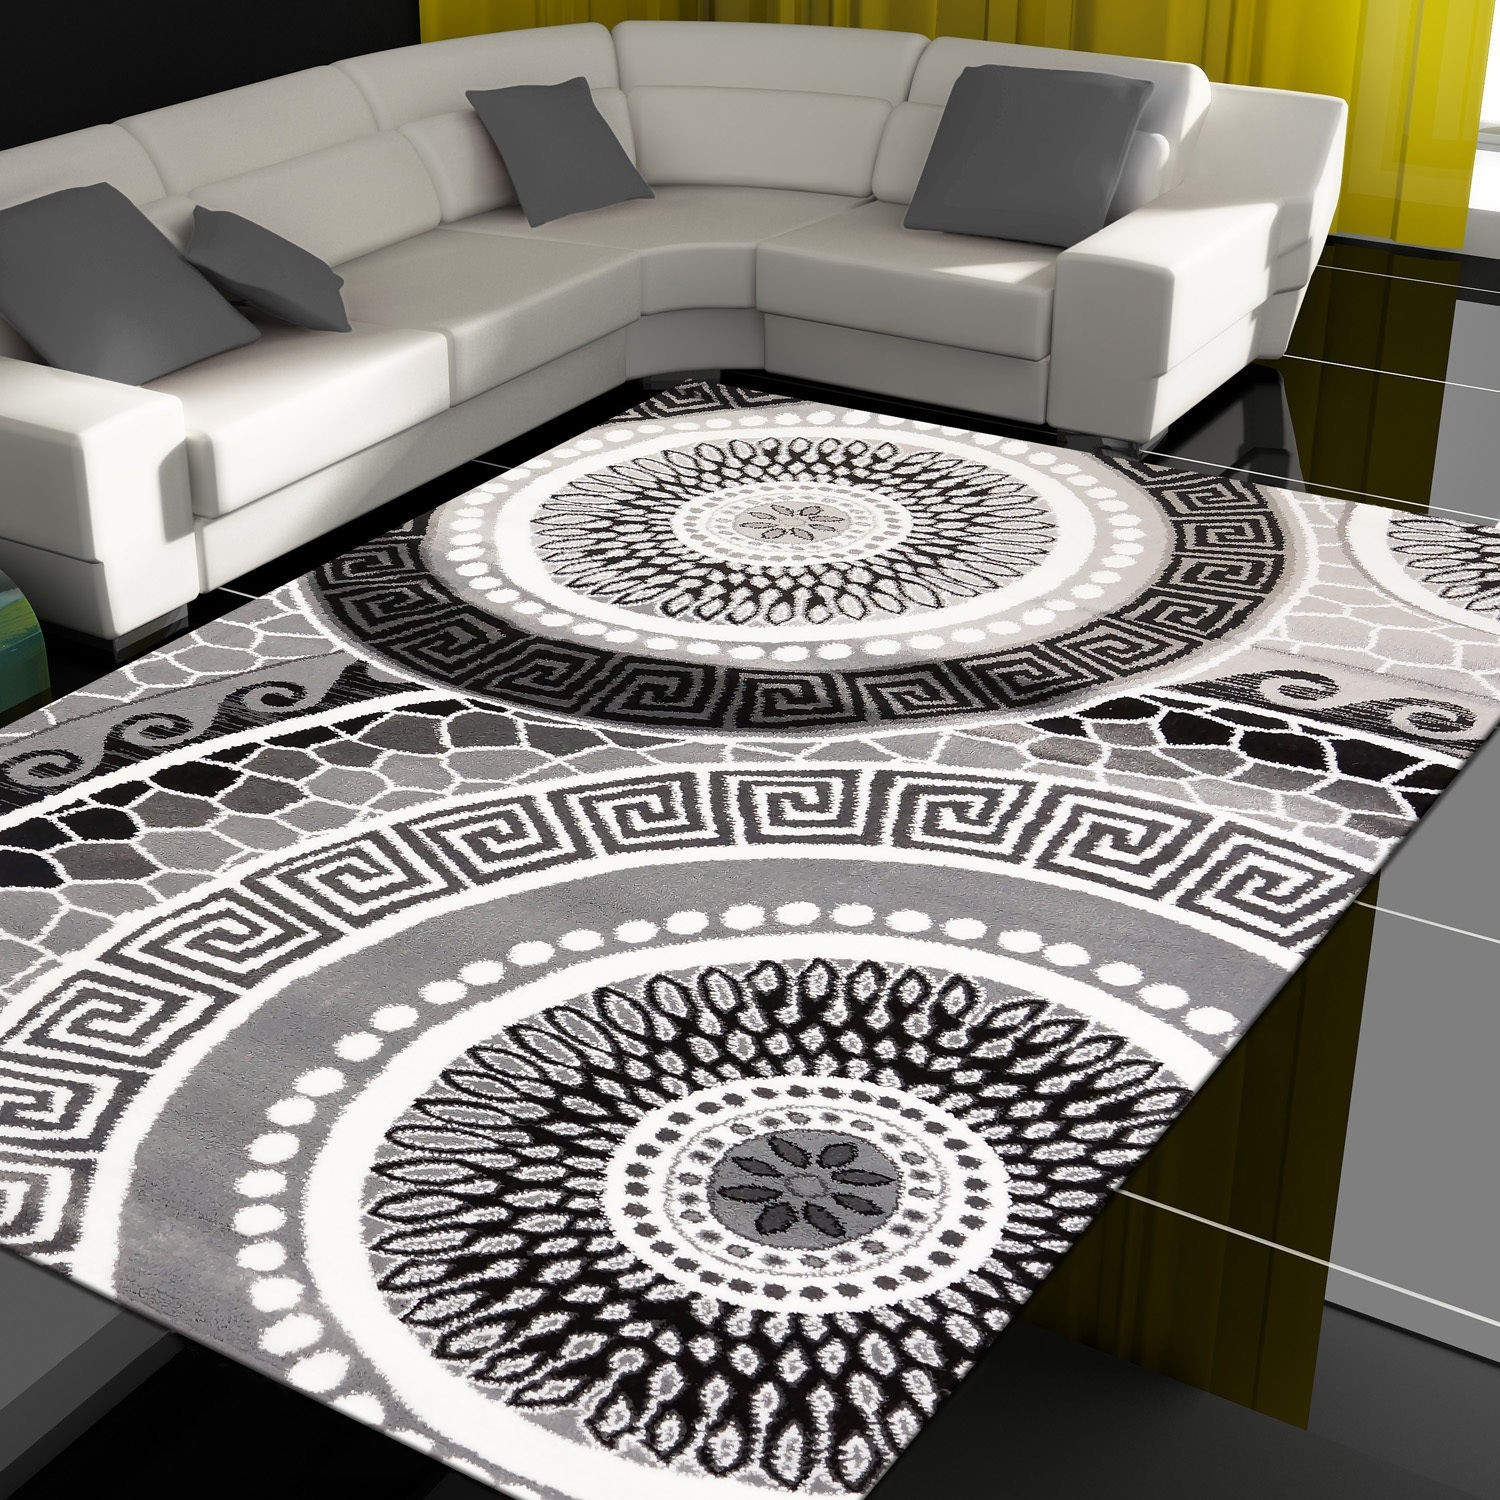 good tapis design moderne coloris noirgris tapis enfanttapis salontapis de salon with tapis alinea. Black Bedroom Furniture Sets. Home Design Ideas